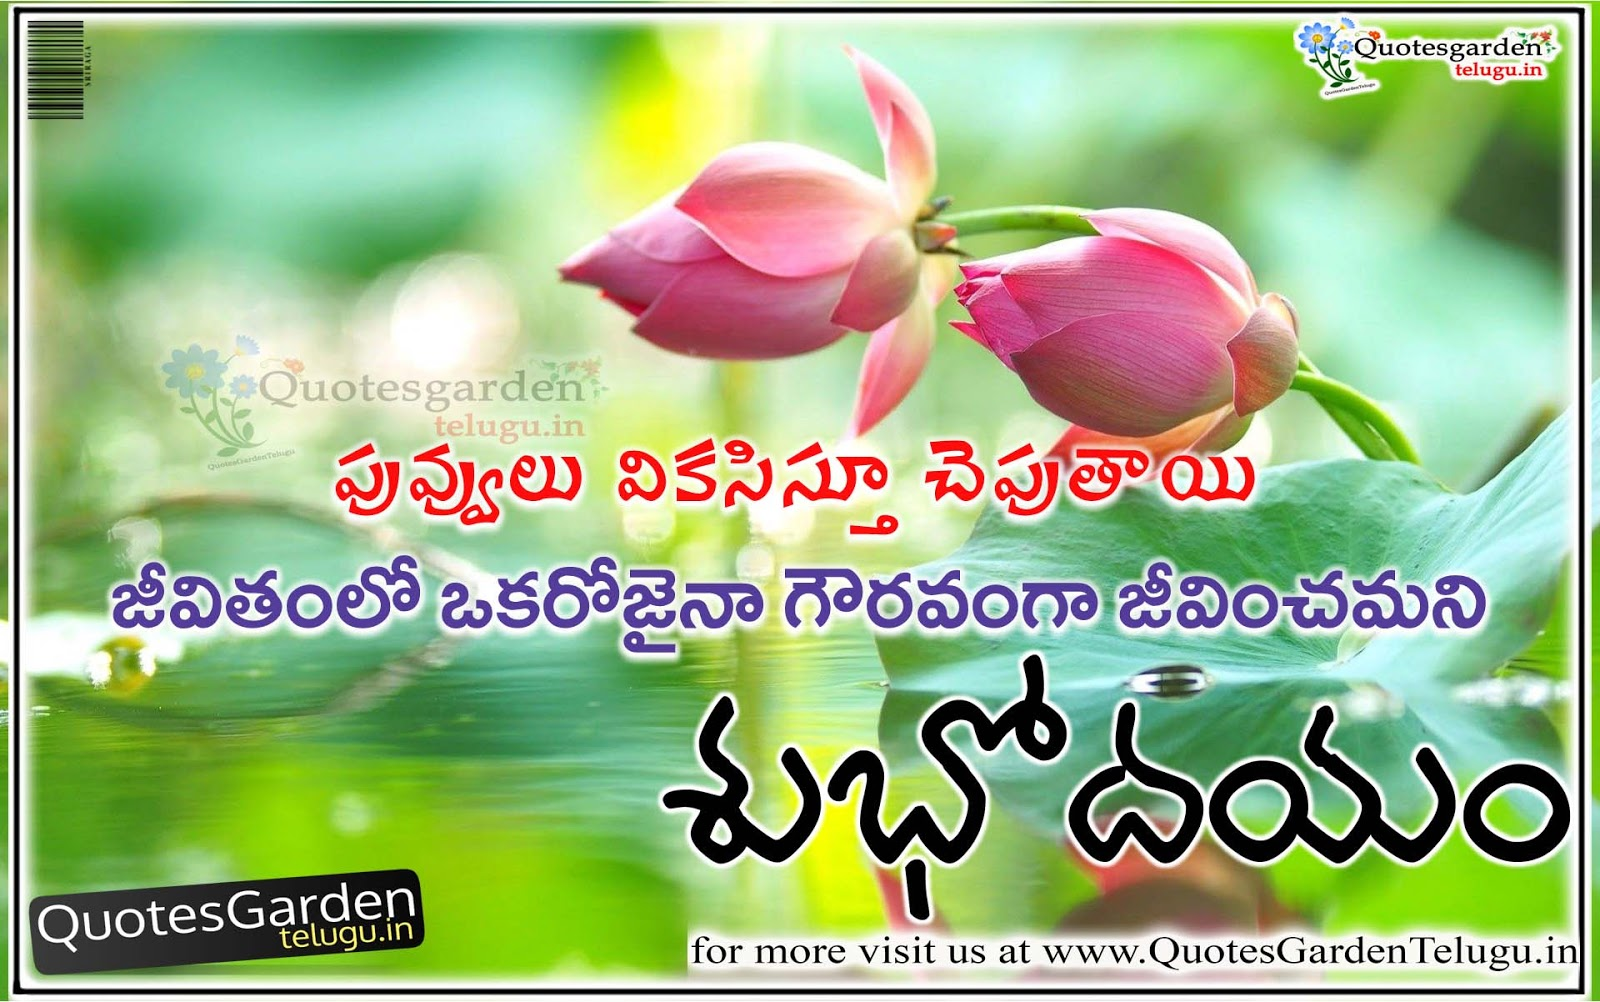 Quotes Garden Fair Best Good Morning Quotes In Telugu  Quotes Garden Telugu  Telugu